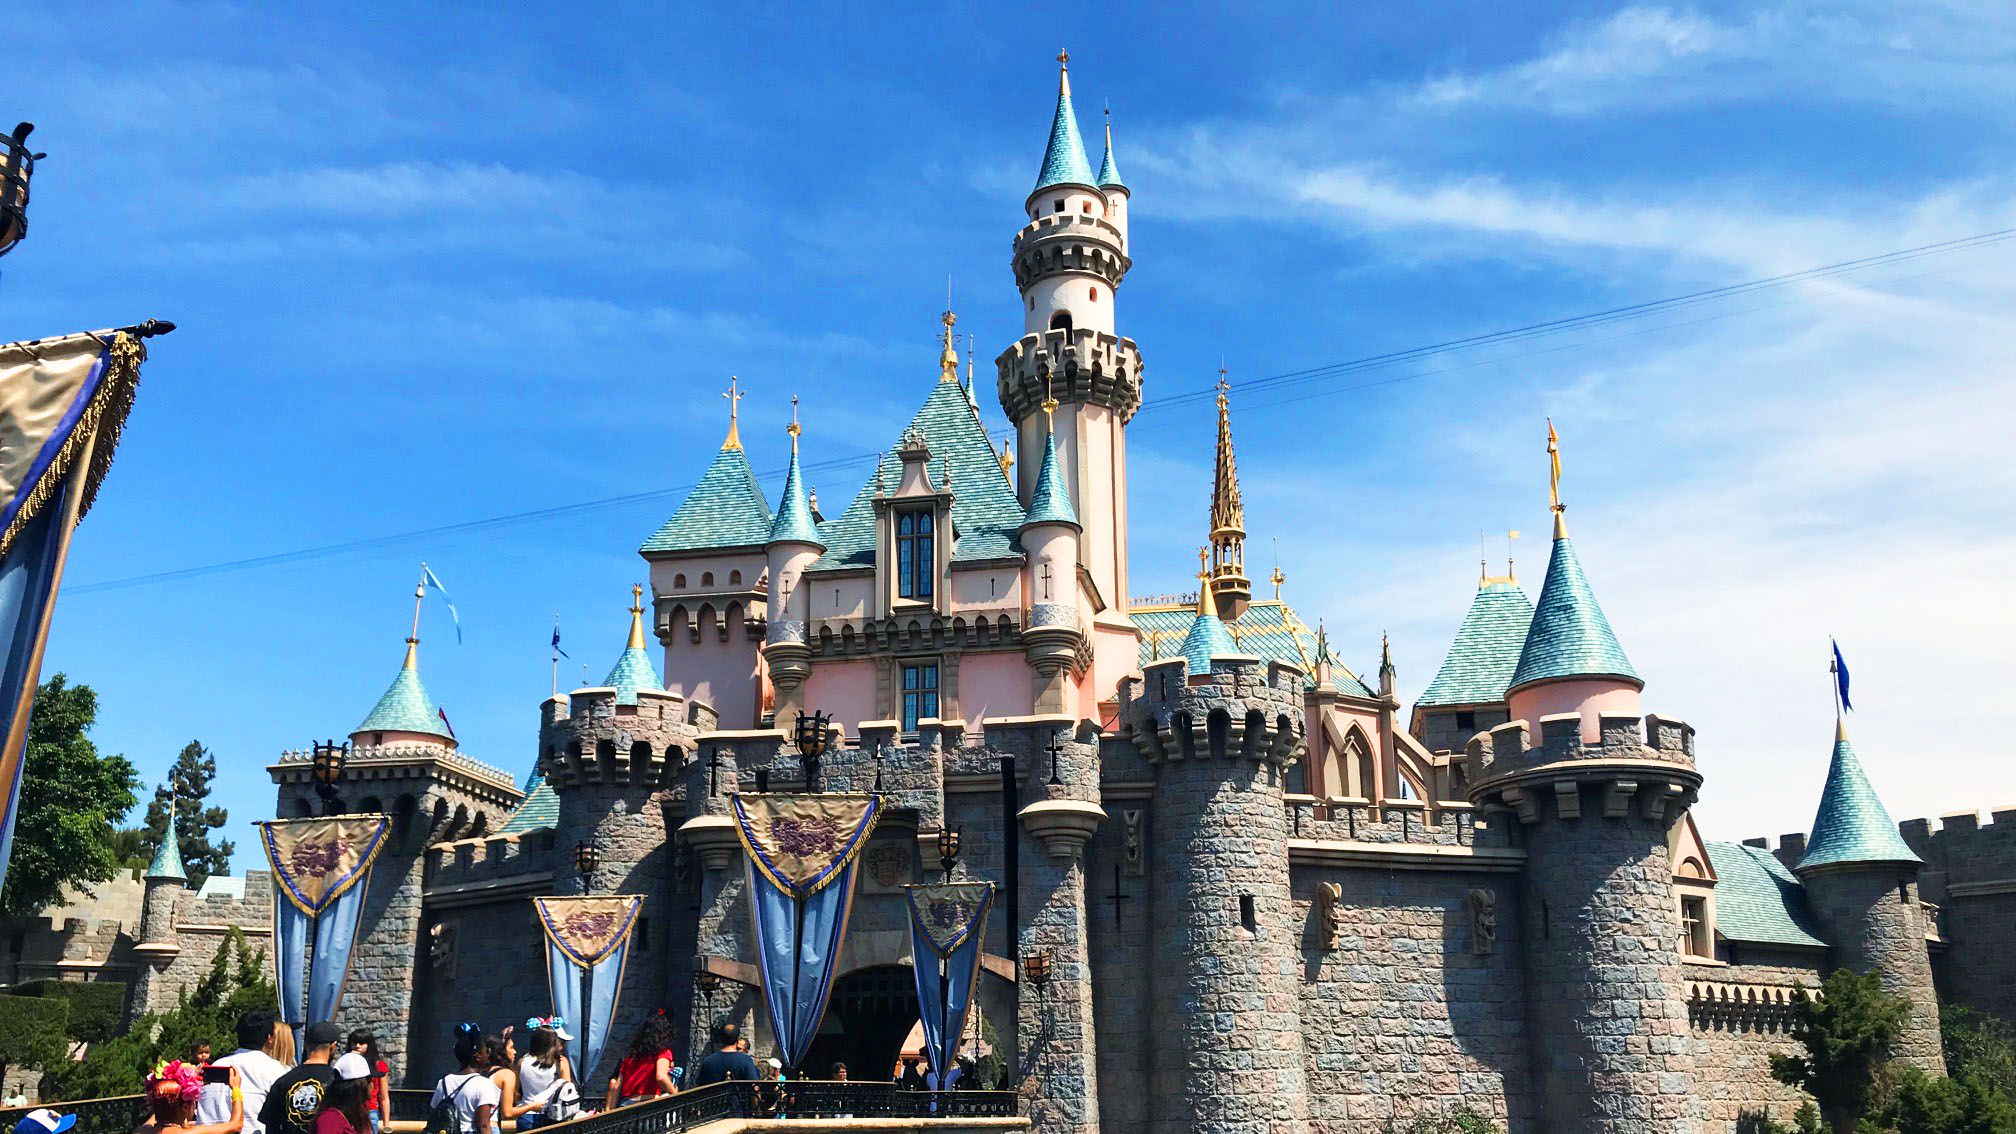 Sleeping Beauty's Castle is pictured here at Disneyland during the summer of 2018.